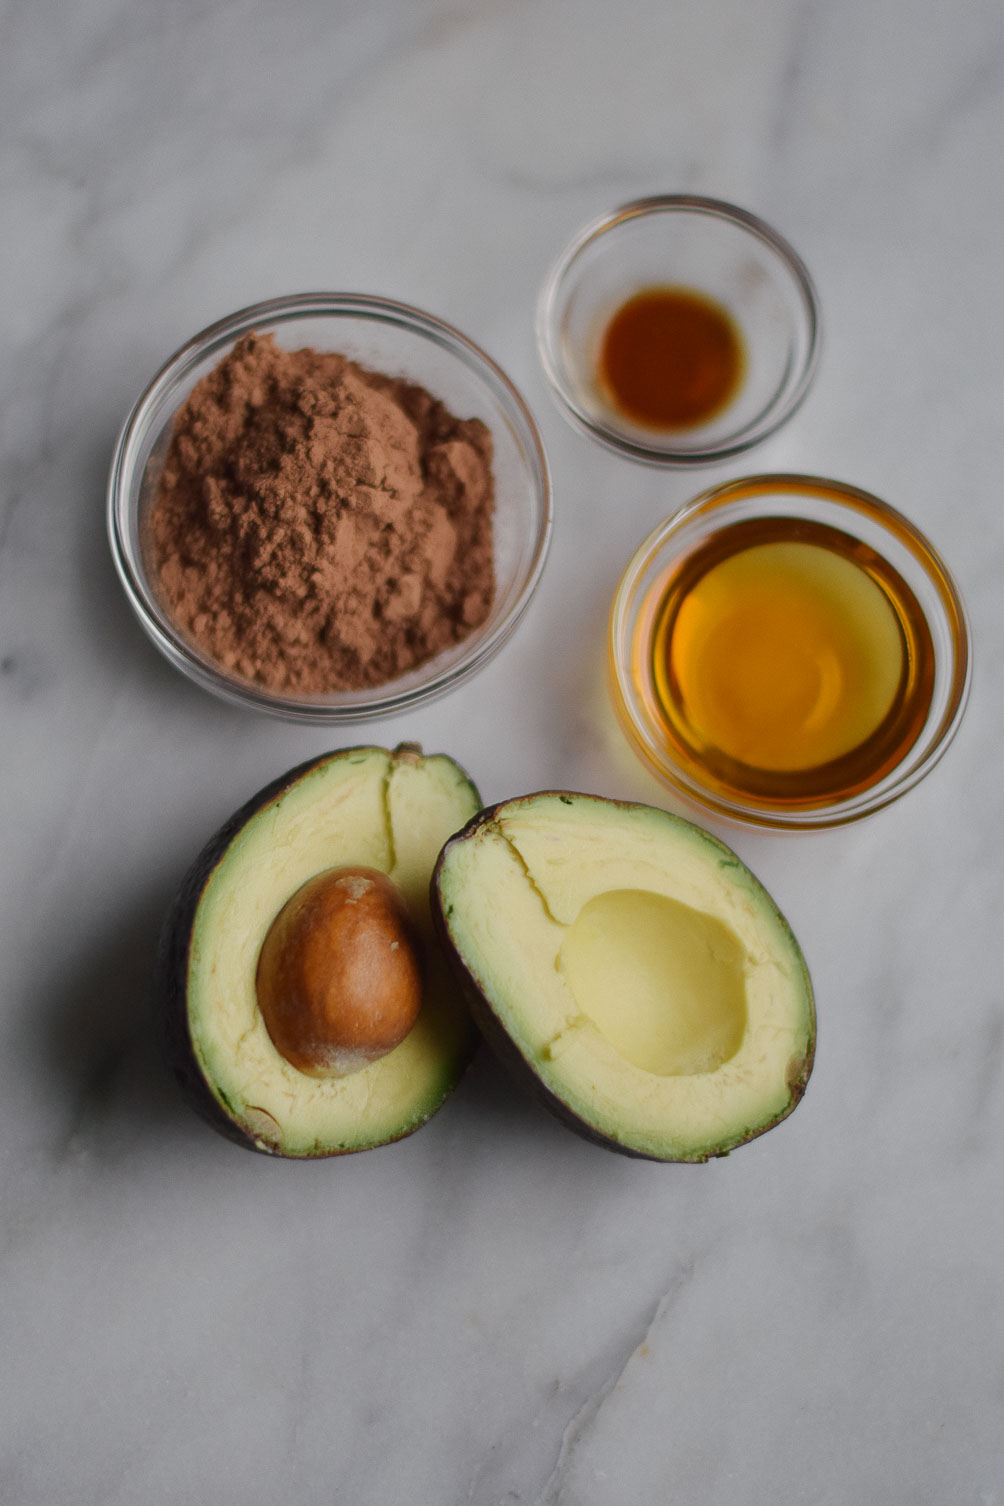 easy healthy dessert recipe for chocolate avocado mousse